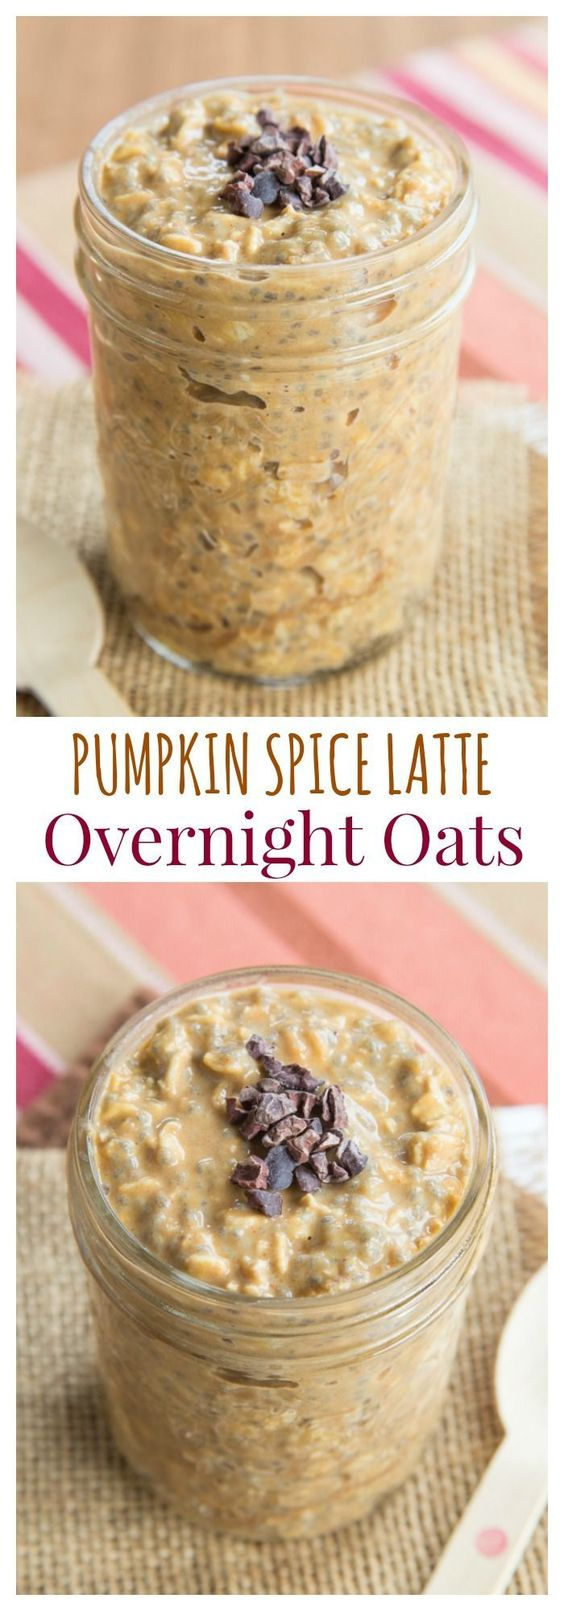 Pumpkin Spice Latte Overnight Oats - forget Starbucks and satisfy your PSL craving with a healthy breakfast recipe. | http://cupcakesandkalechips.com | gluten free: